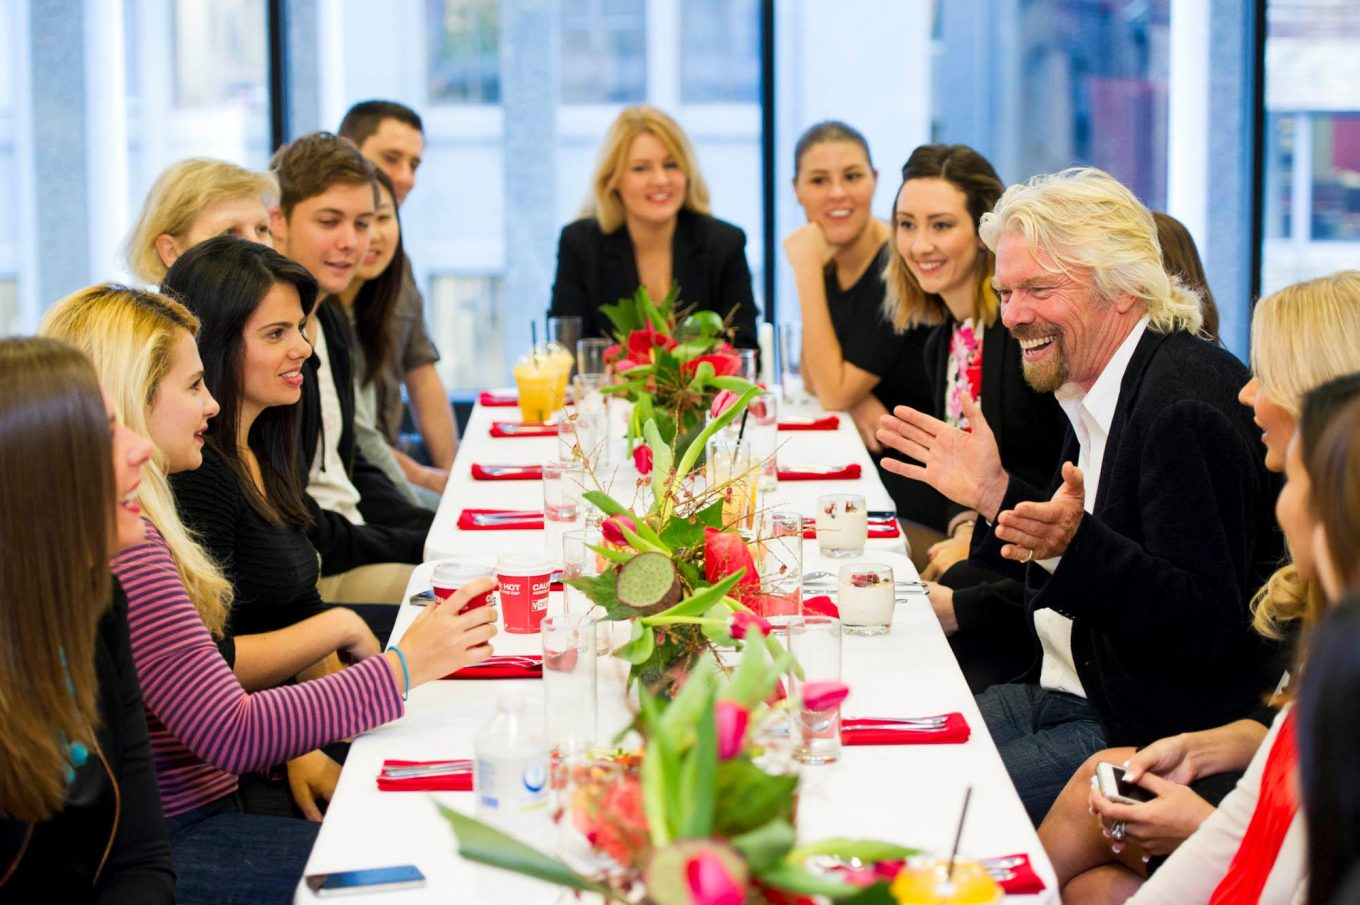 23 Top Tips On How To Build Business Relationships